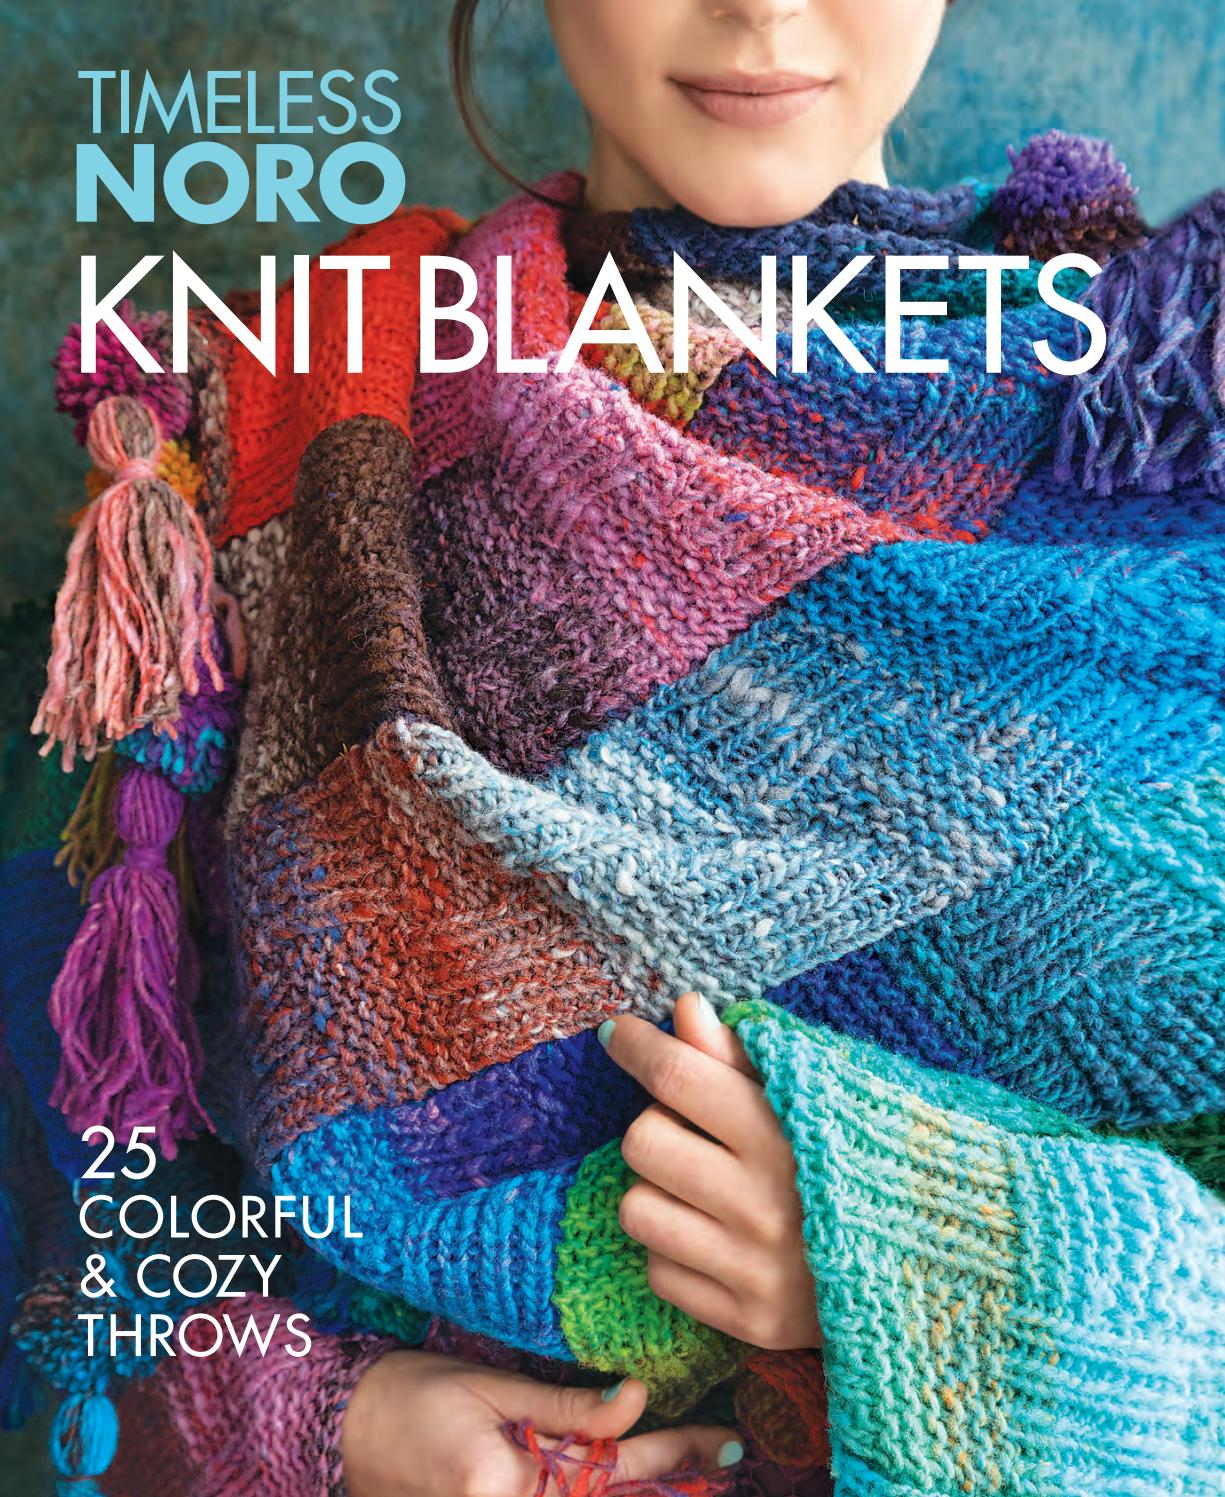 Knit Blankets 25 Colorful Cozy Throws By Sixth Spring Books Issuu